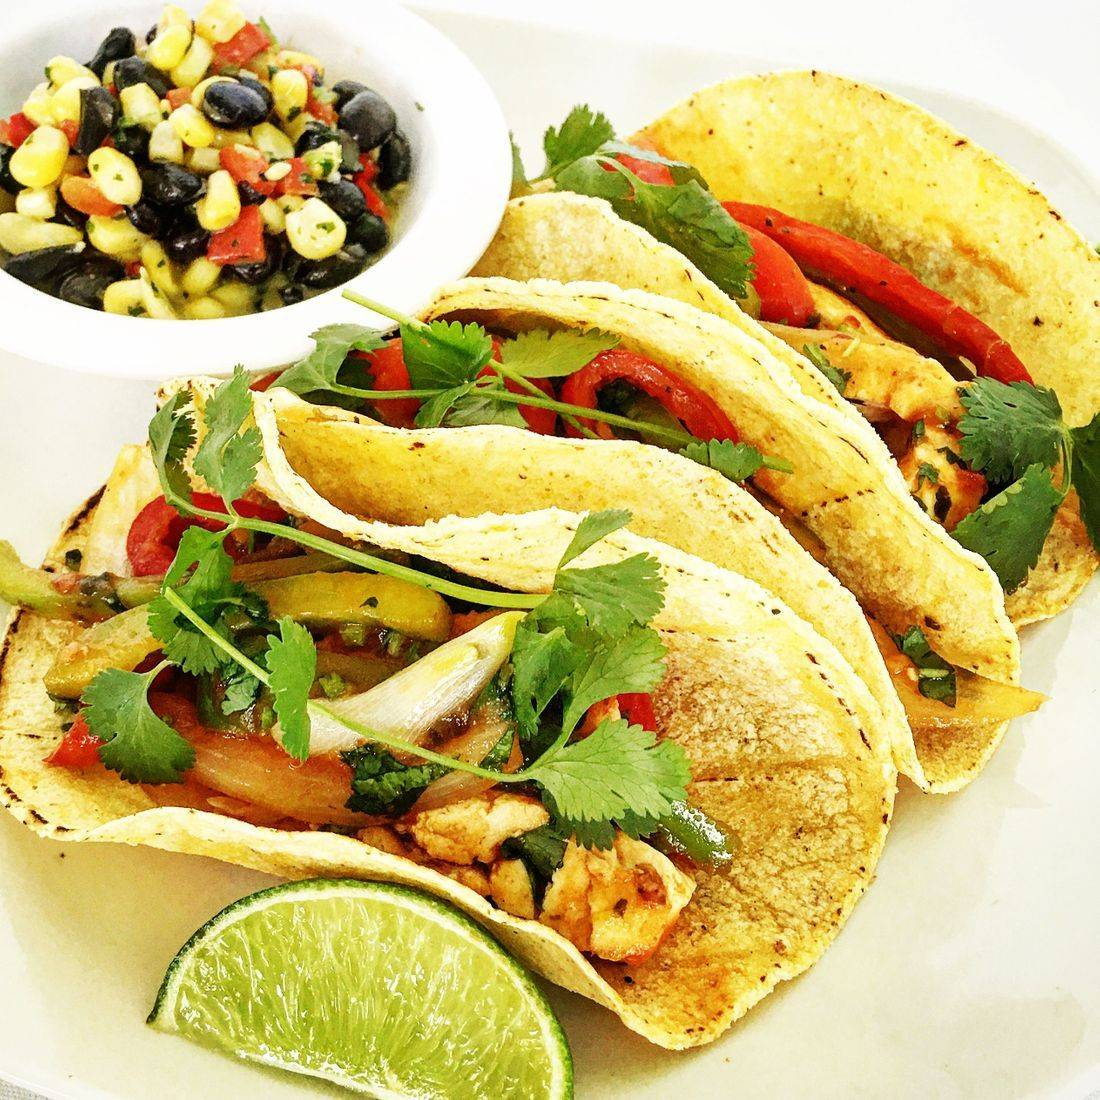 Shrimp, fish, chicken or beef street tacos